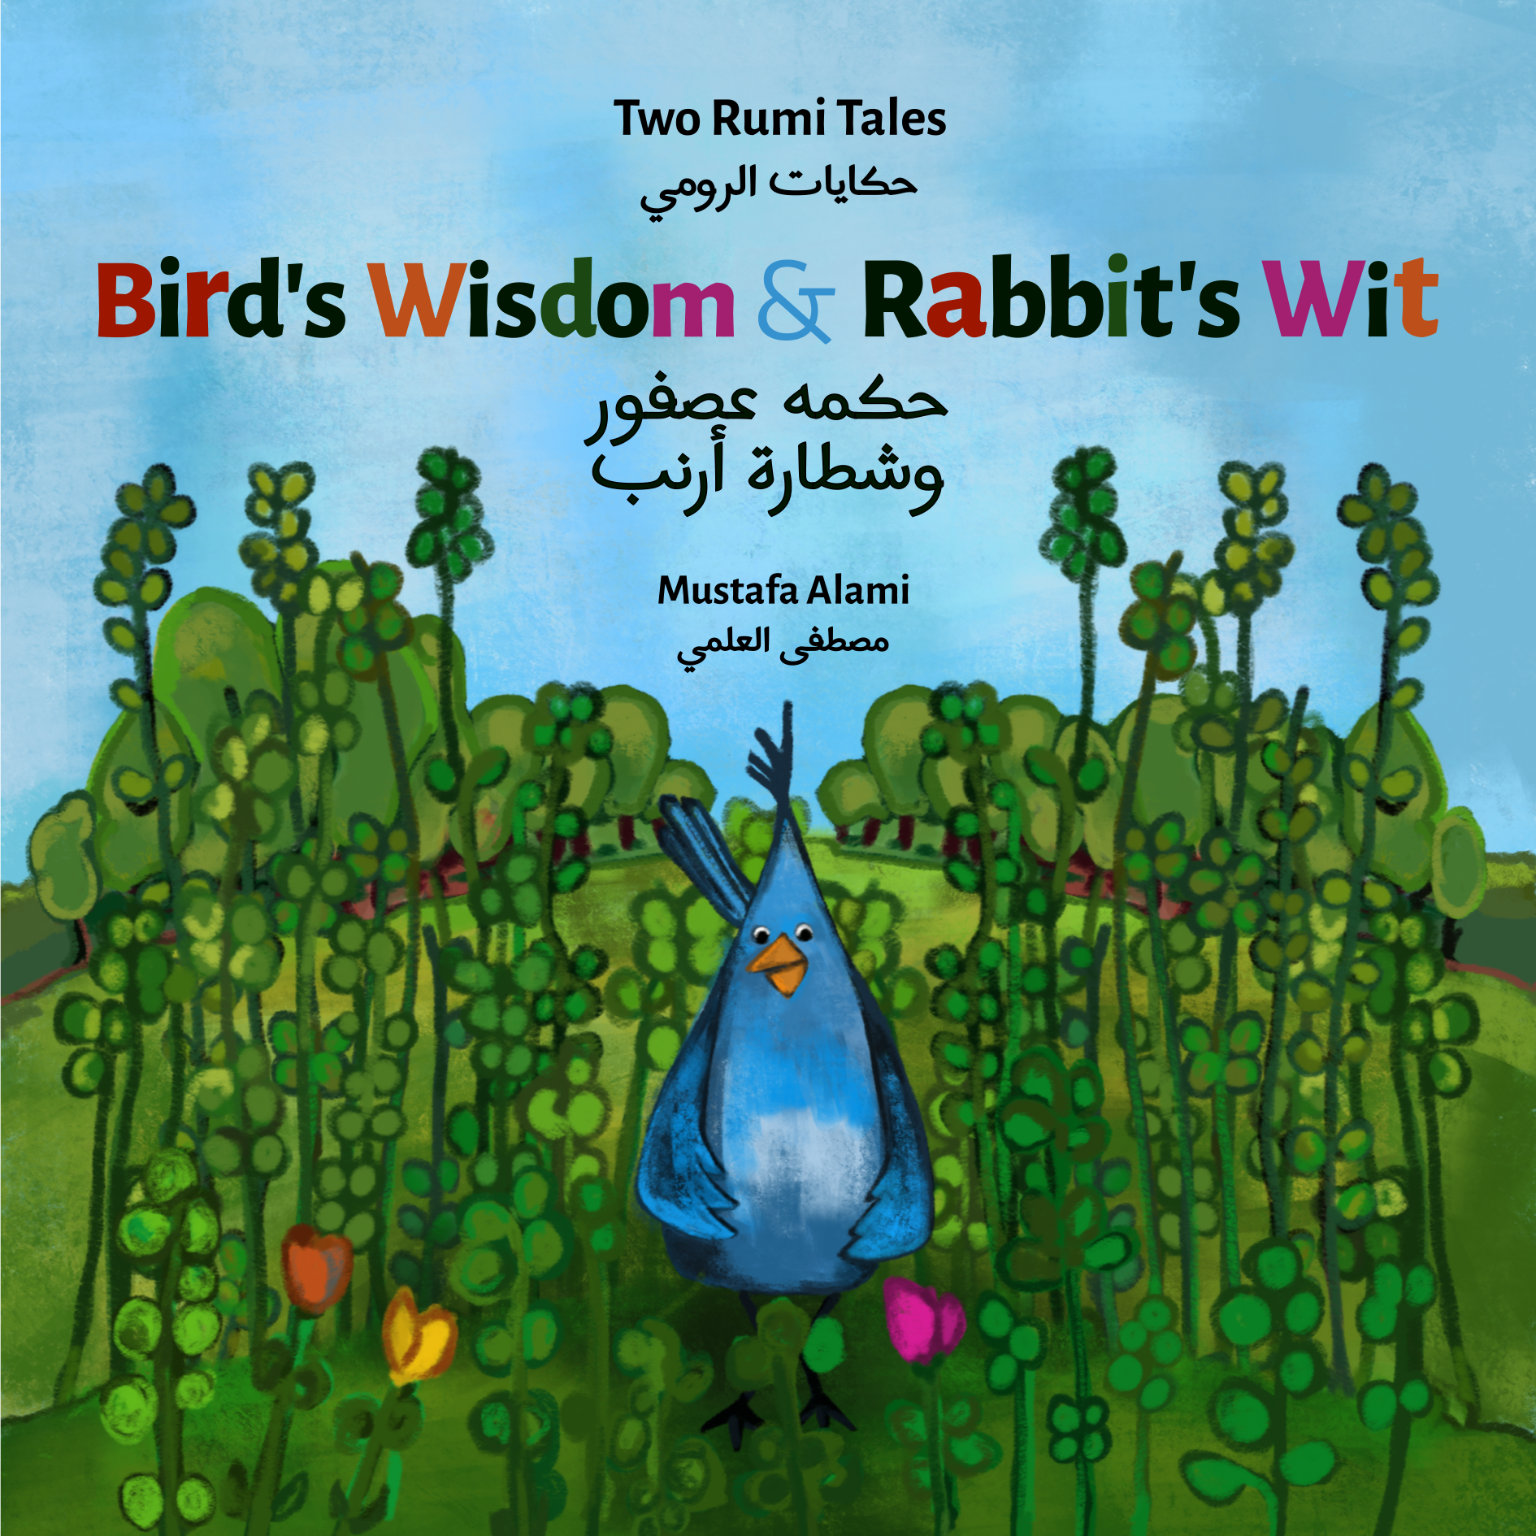 Bird's Wisdom and Rabbit's Wit title in colorful typography.